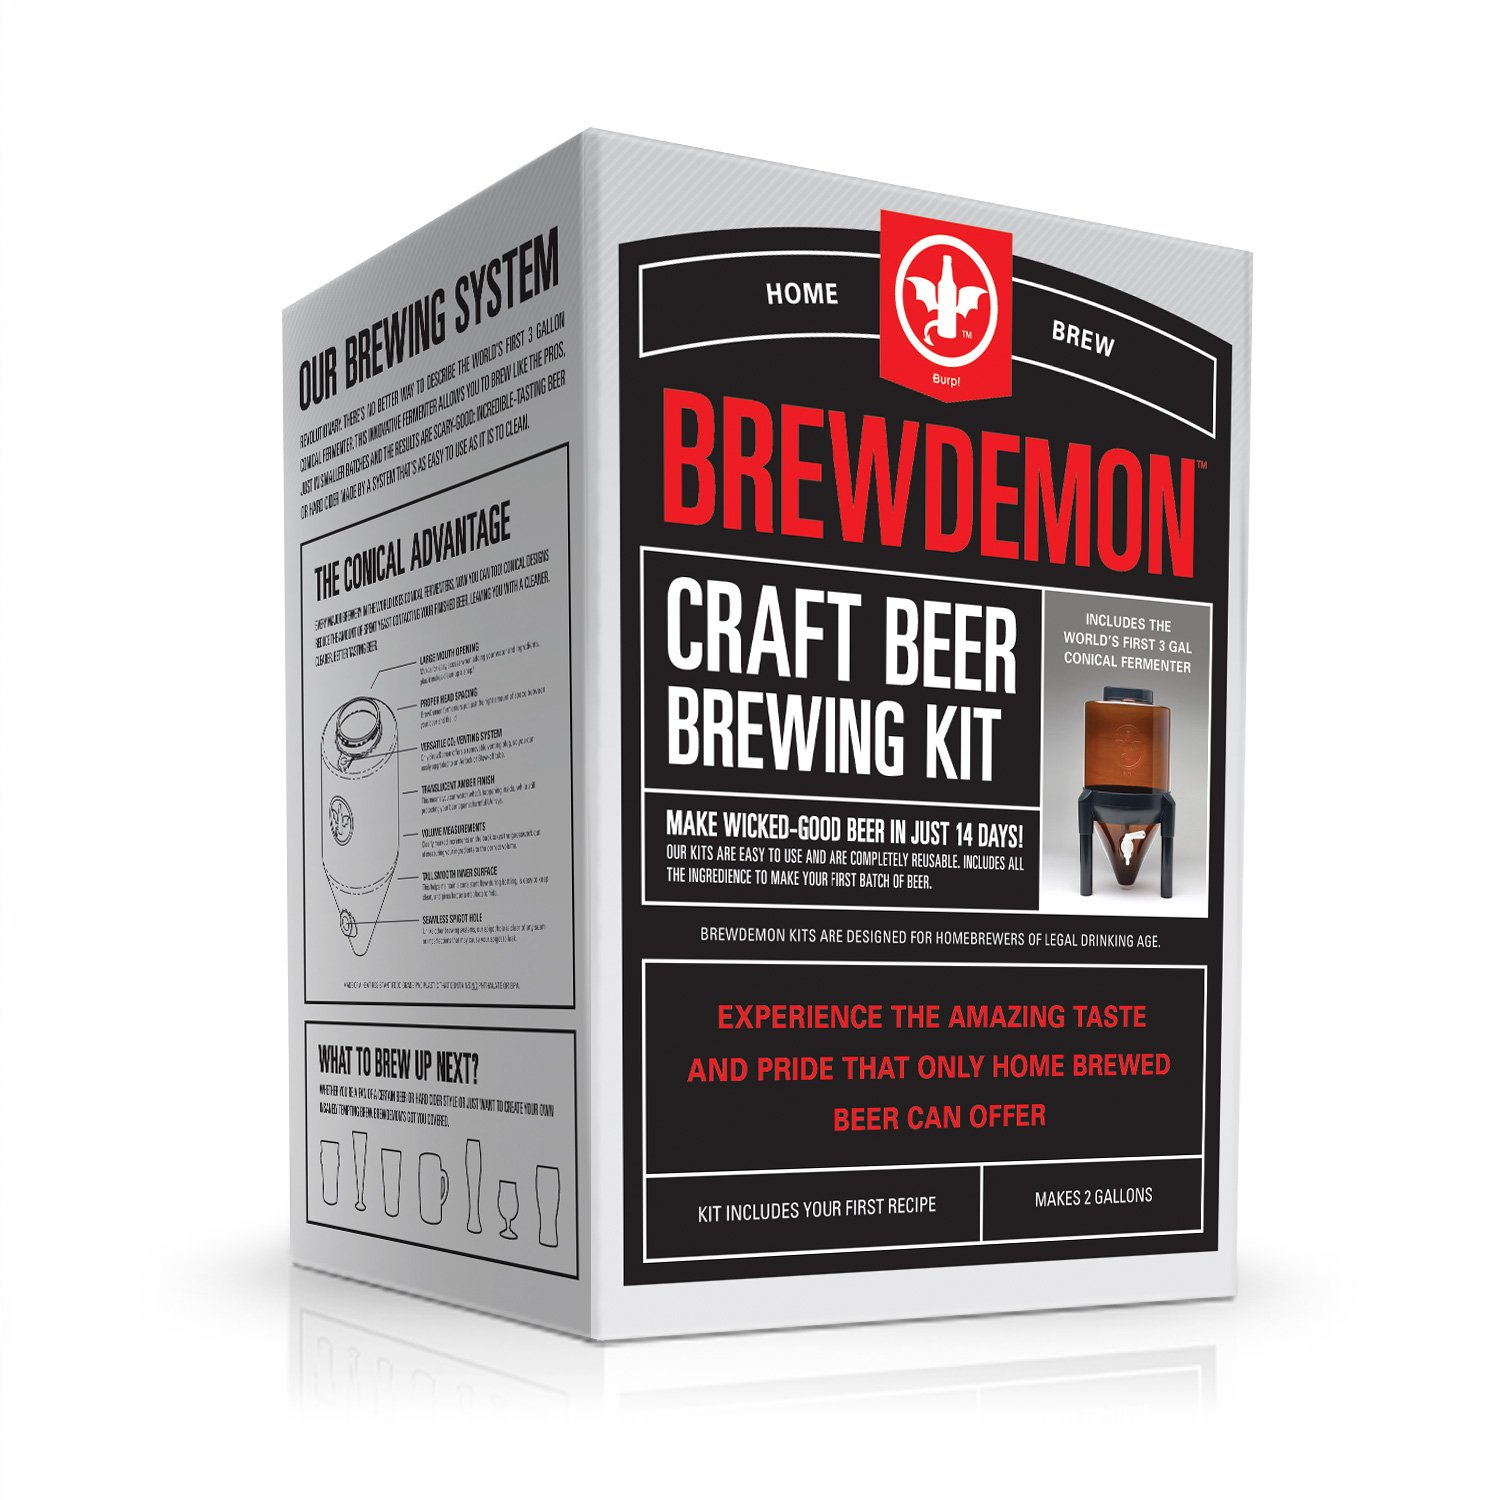 BrewDemon Craft Beer Kit Extra by Demon Brewing Company - NO SIPHON HOSE OR AIRLOCK REQUIRED Easy To Use Craft Beer Starter Kit With Reusable Conical Fermenter, Equipment and Ingredients - Make Wicked by BrewDemon (Image #7)